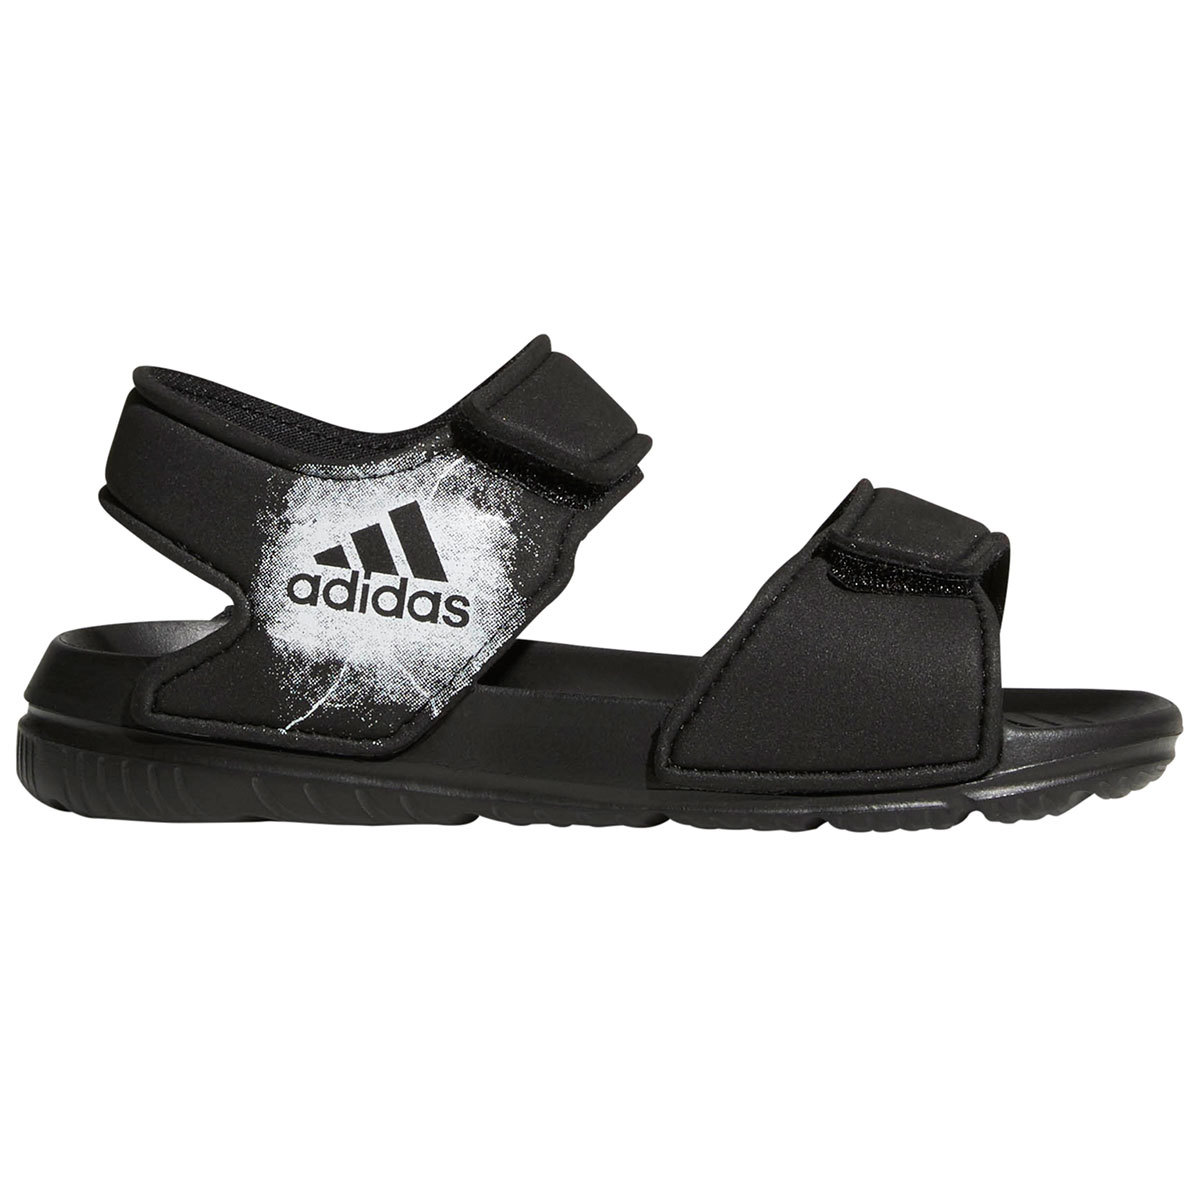 Adidas Alta Toddler Swim I Sandals jq5AR4L3